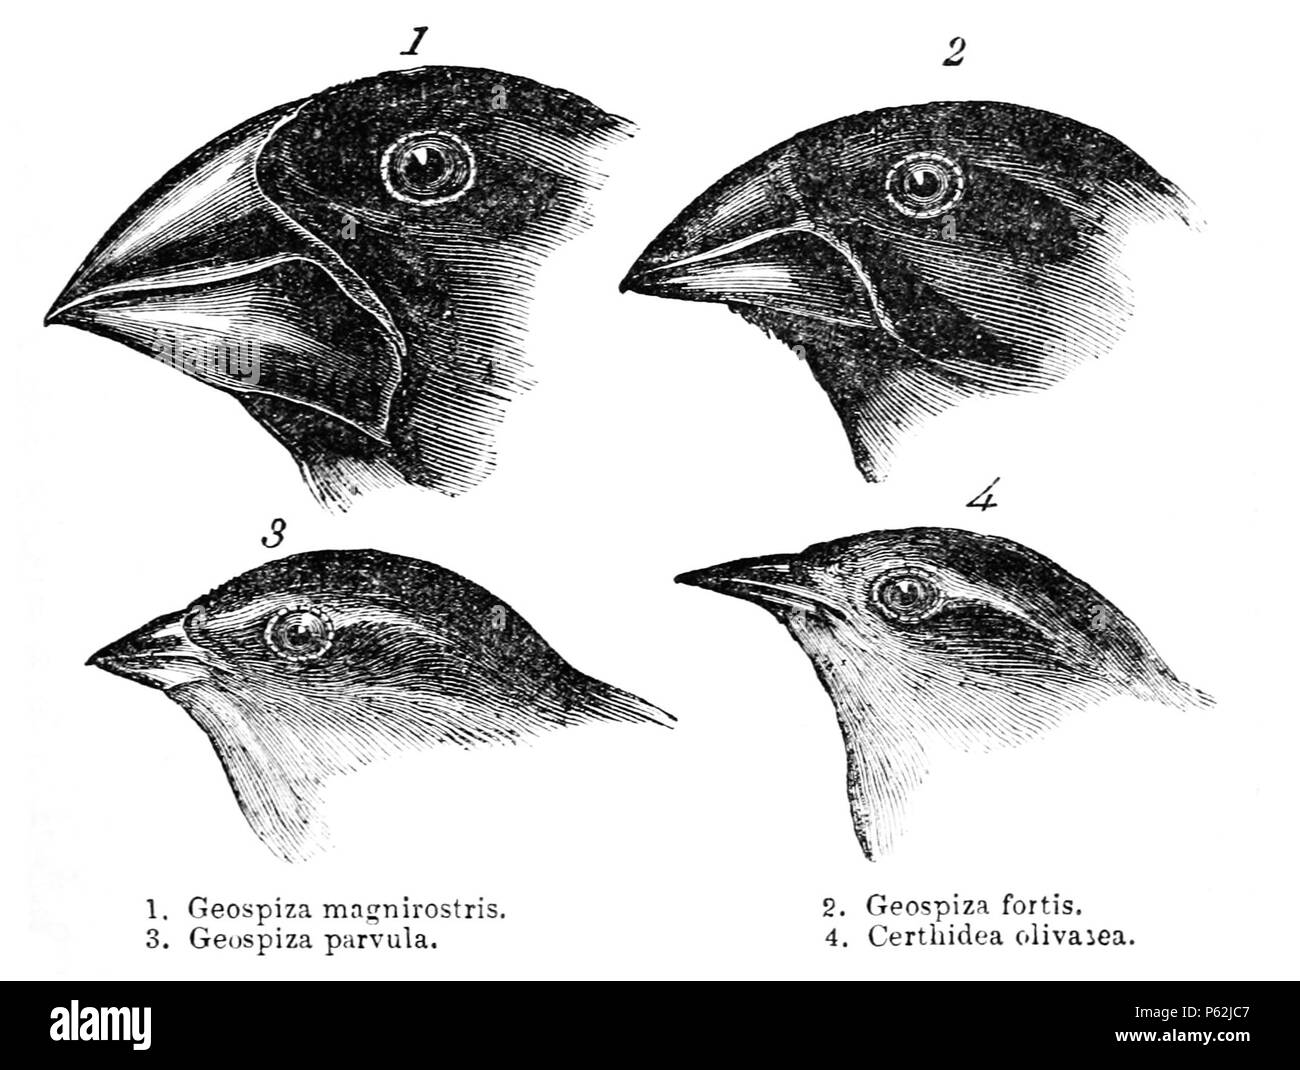 N/A. Darwin's finches or Galapagos finches. Darwin, 1845. Journal of researches into the natural history and geology of the countries visited during the voyage of H.M.S. Beagle round the world, under the Command of Capt. Fitz Roy, R.N. 2d edition. 1. (category) Geospiza magnirostris 2. (category) Geospiza fortis 3. Geospiza parvula, now (category) Camarhynchus parvulus 4. (category) Certhidea olivacea . before 1882. John Gould (14.Sep.1804 - 3.Feb.1881) 413 Darwin's finches by Gould - Stock Image